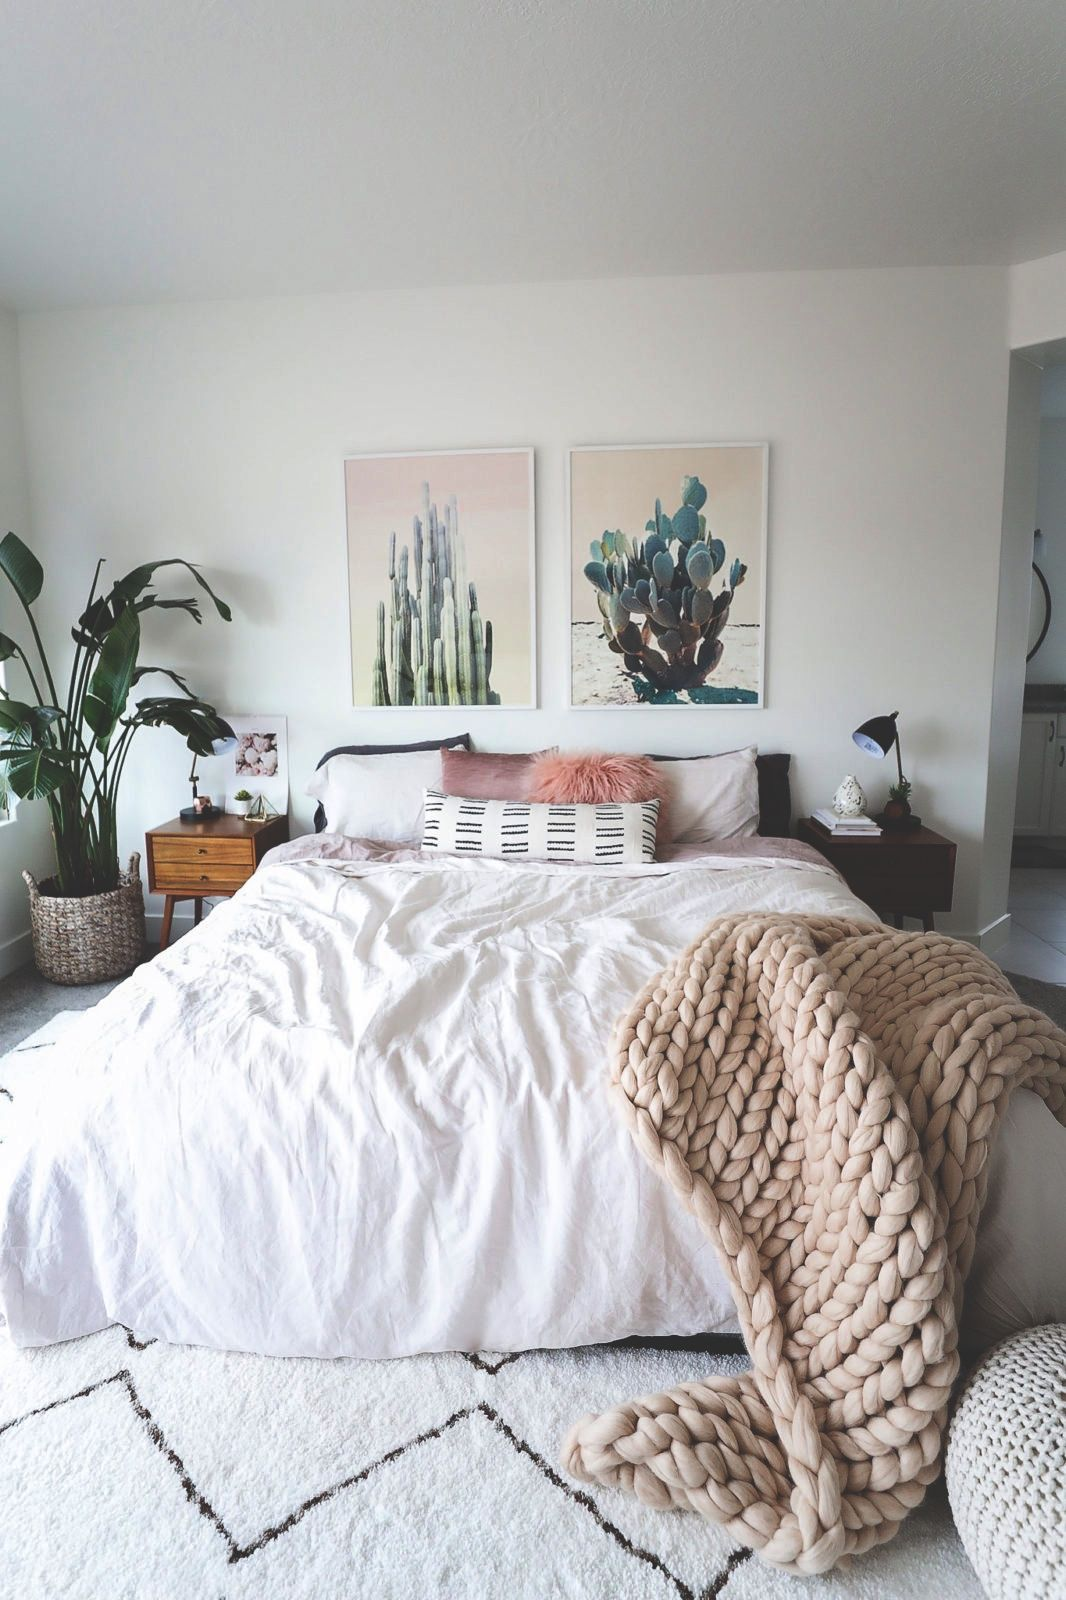 Bedroom blush tones Cactus decor Home sweet home Interior decoration ...